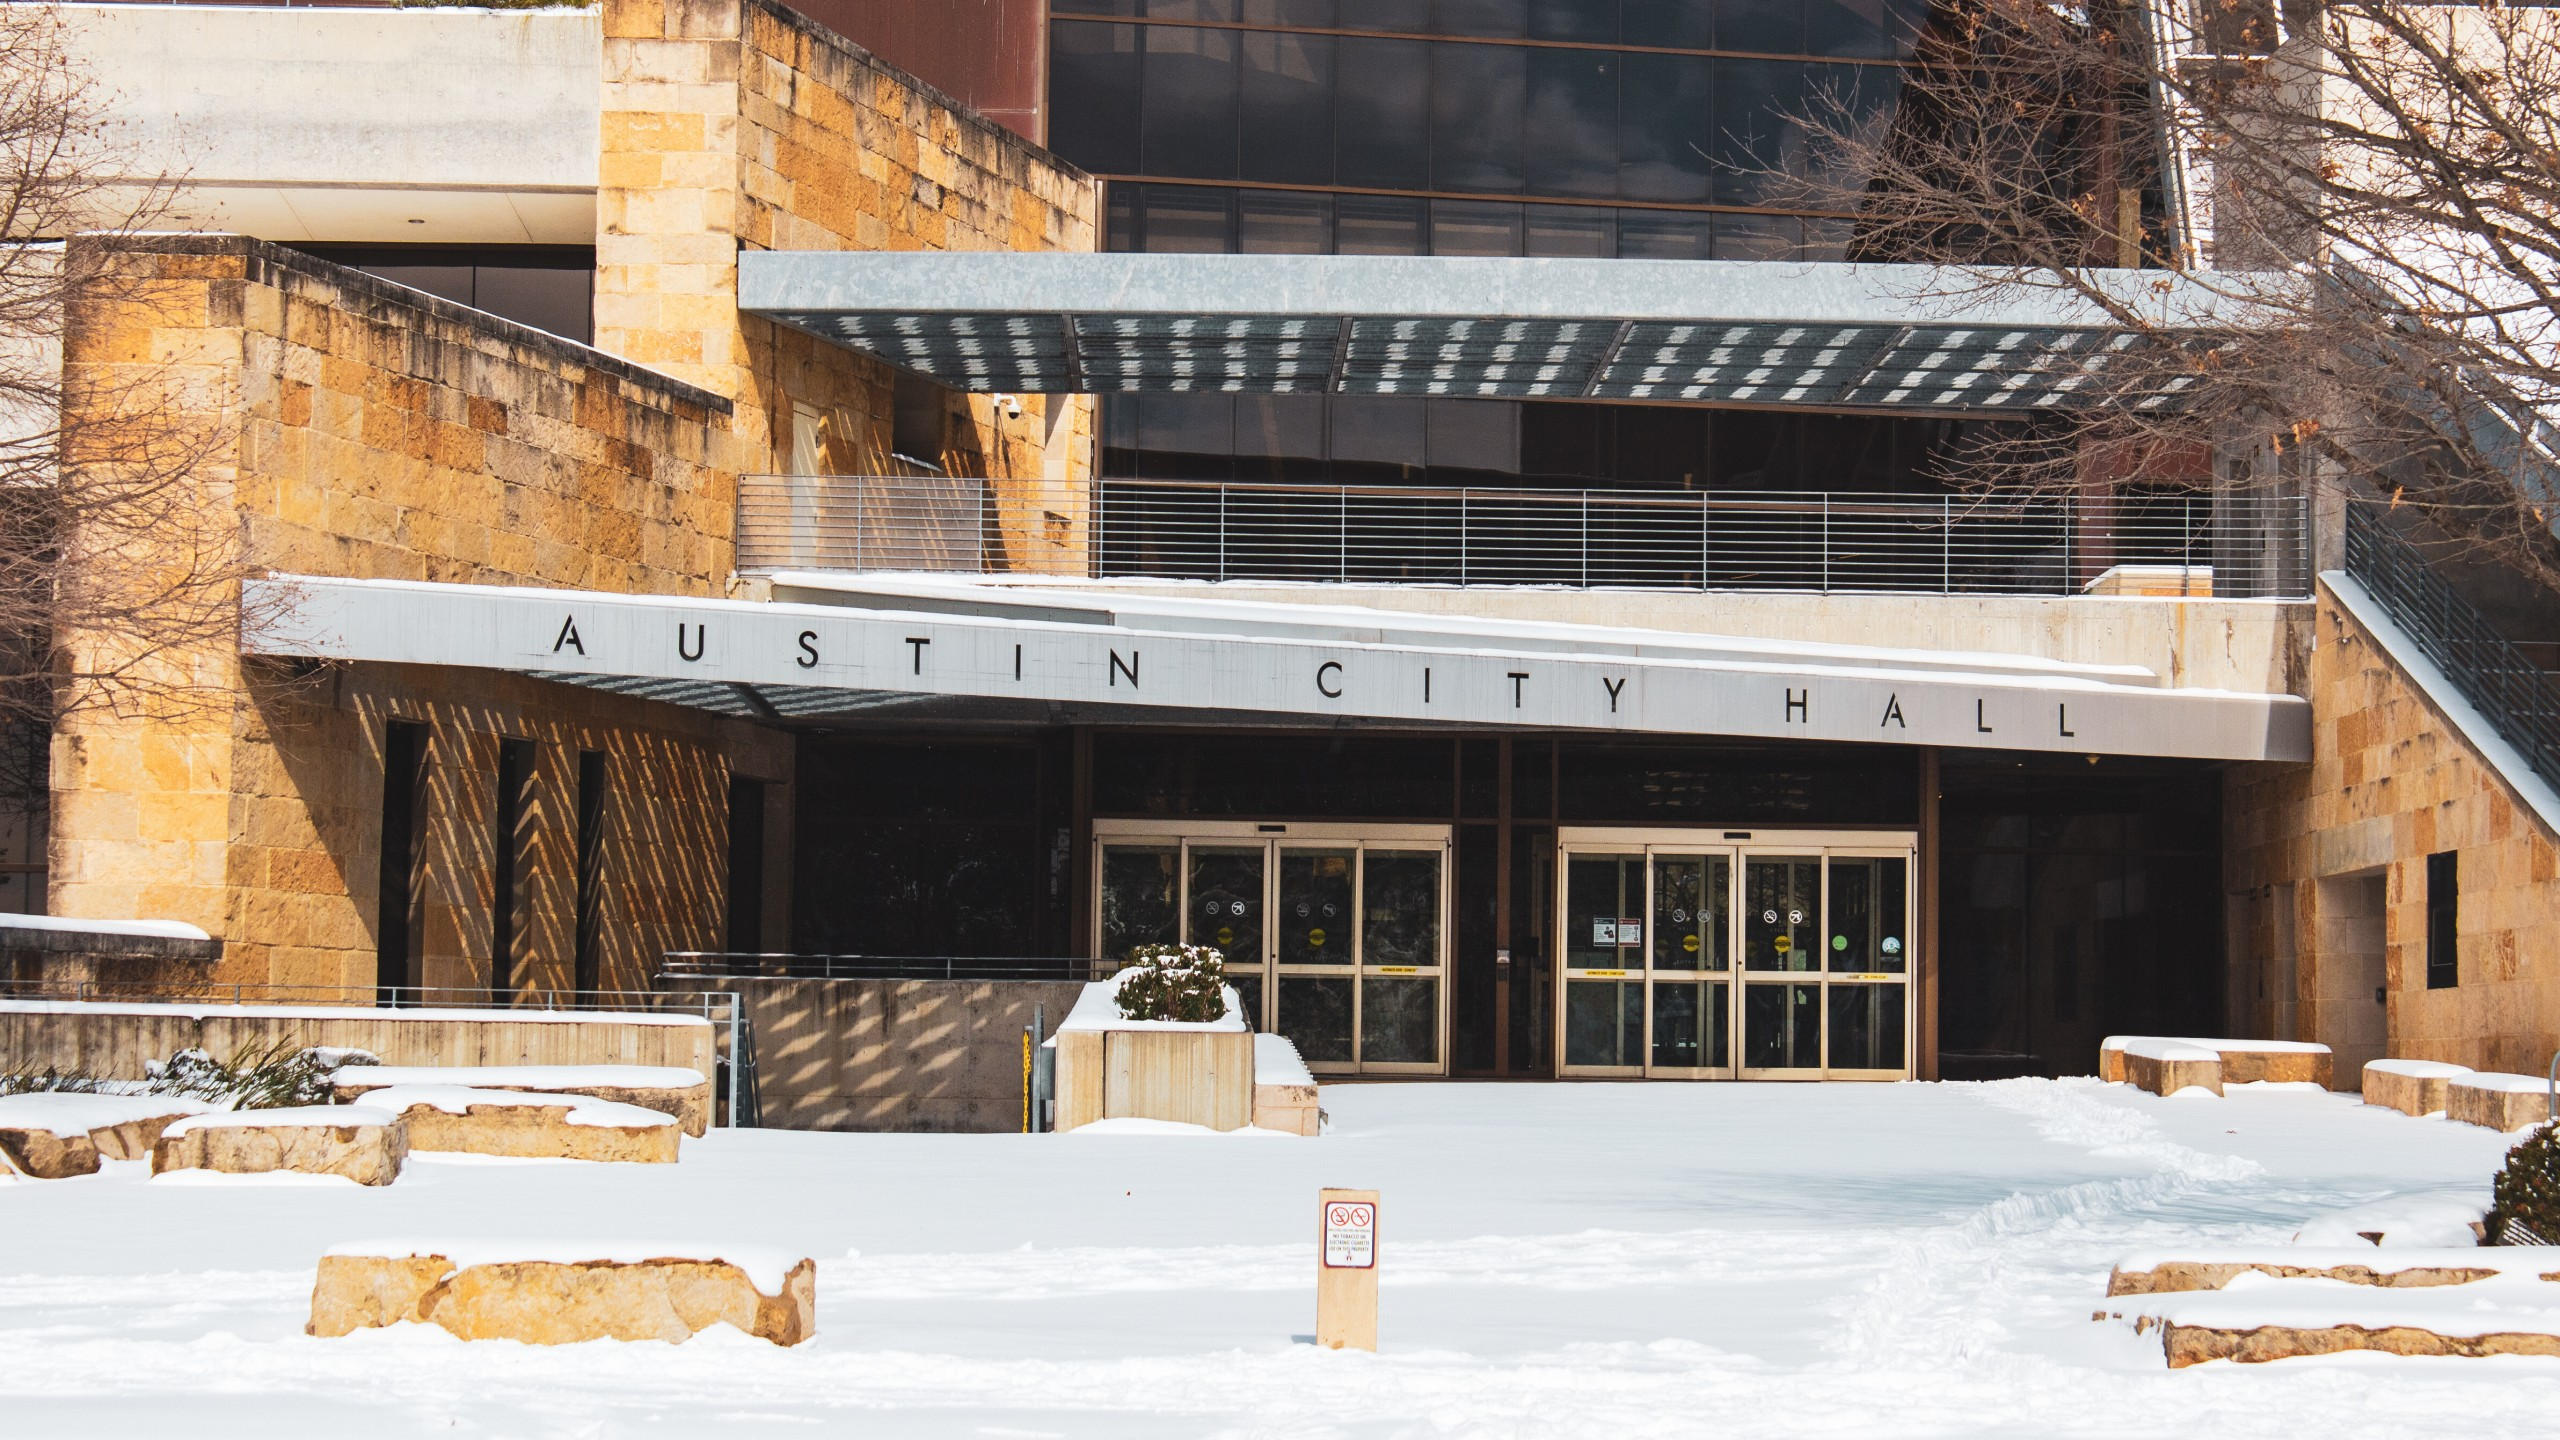 Austin City Hall on Feb. 15, 2021 (Saul Hannibal Photo)